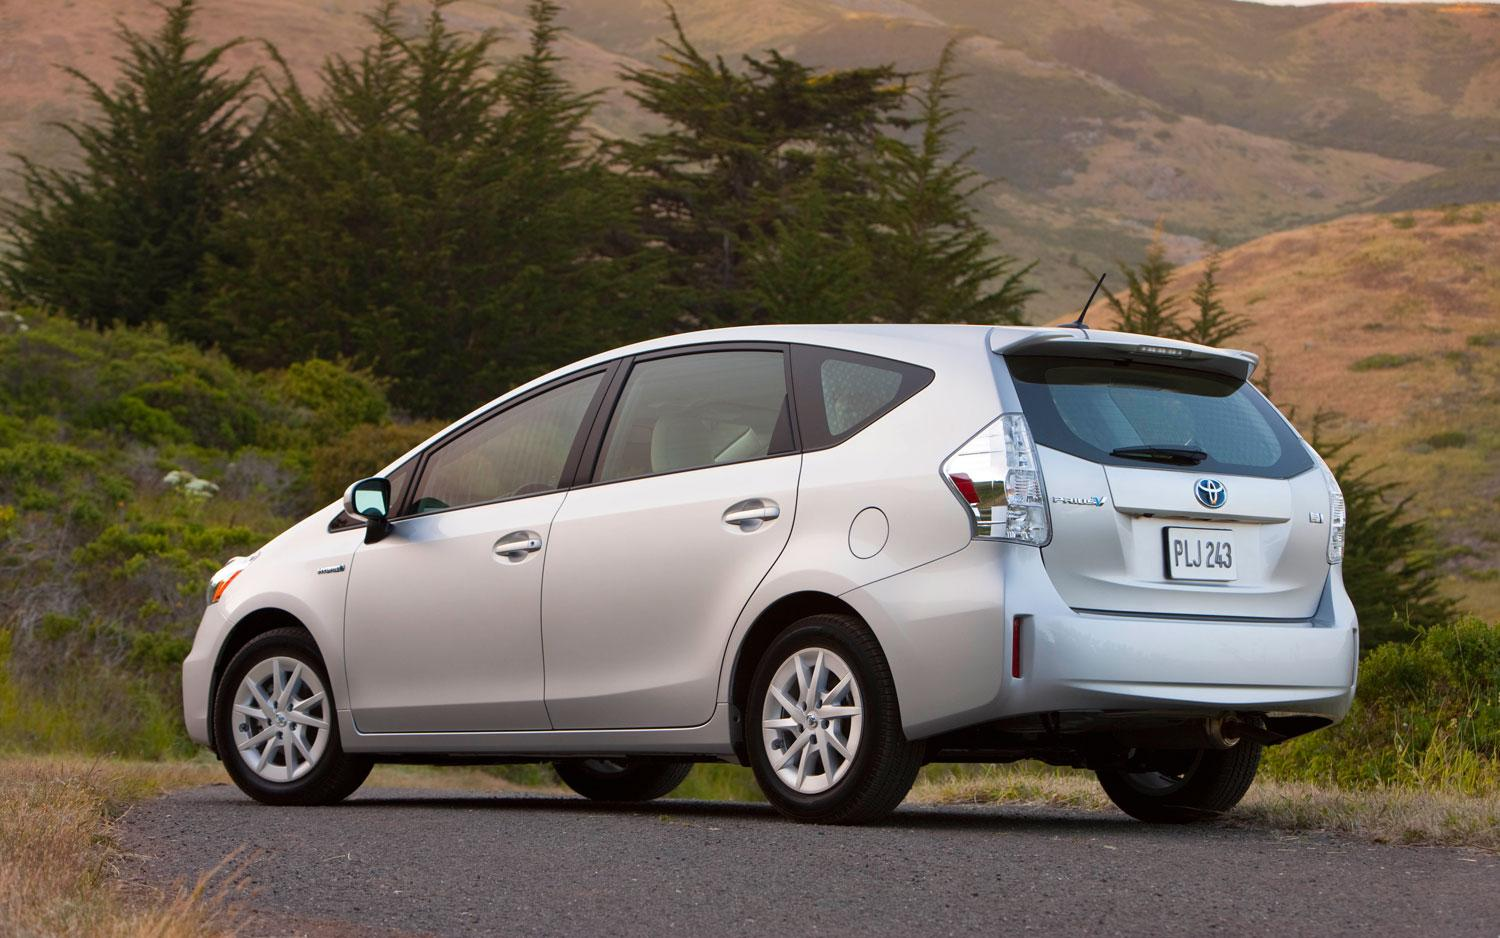 2017 toyota prius v at waite toyota in watertown near fort drum. Black Bedroom Furniture Sets. Home Design Ideas